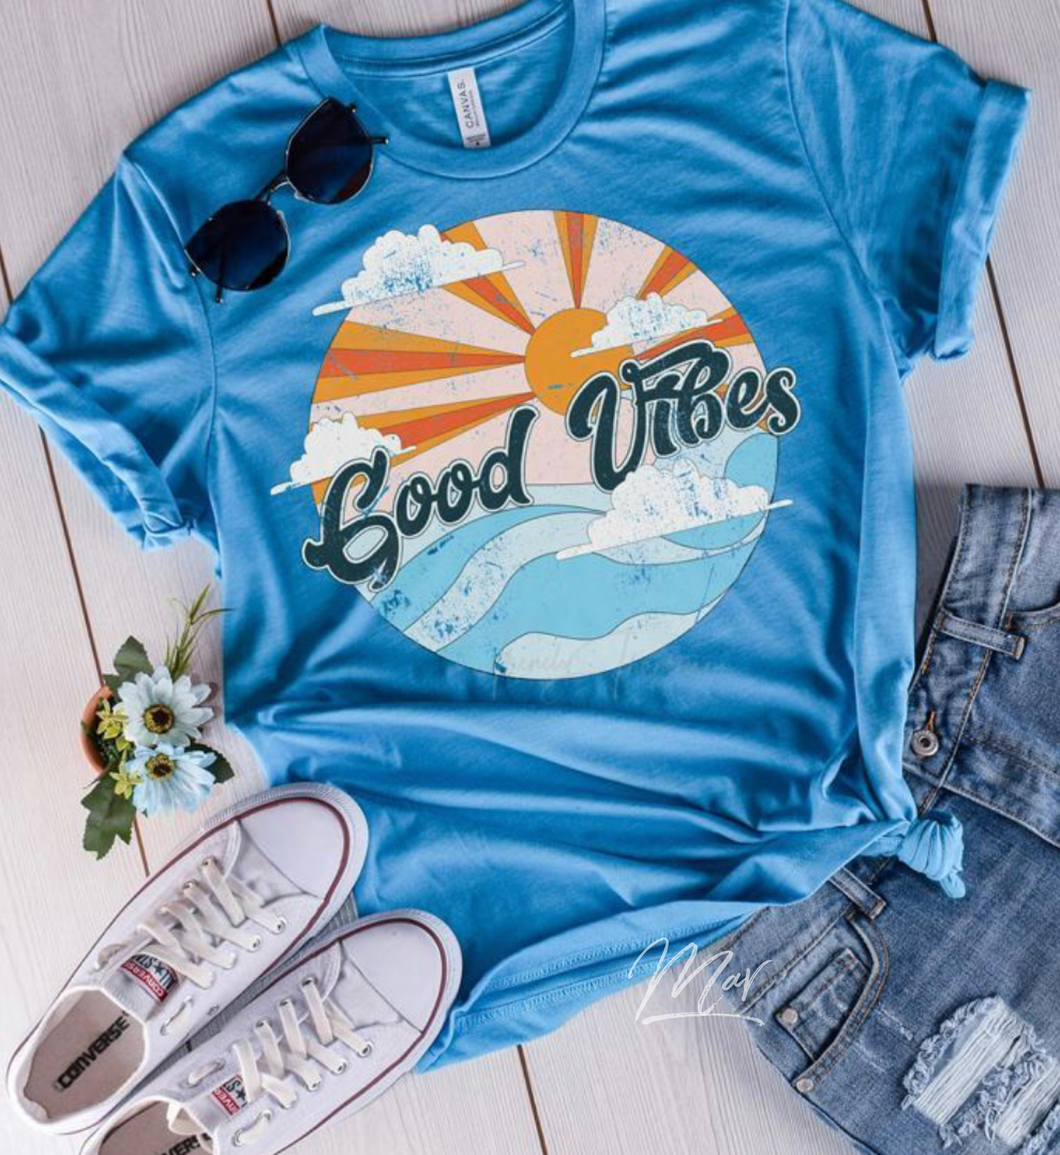 Good vibes summer graphic tee long sleeve crew or hoodie - Mavictoria Designs Hot Press Express